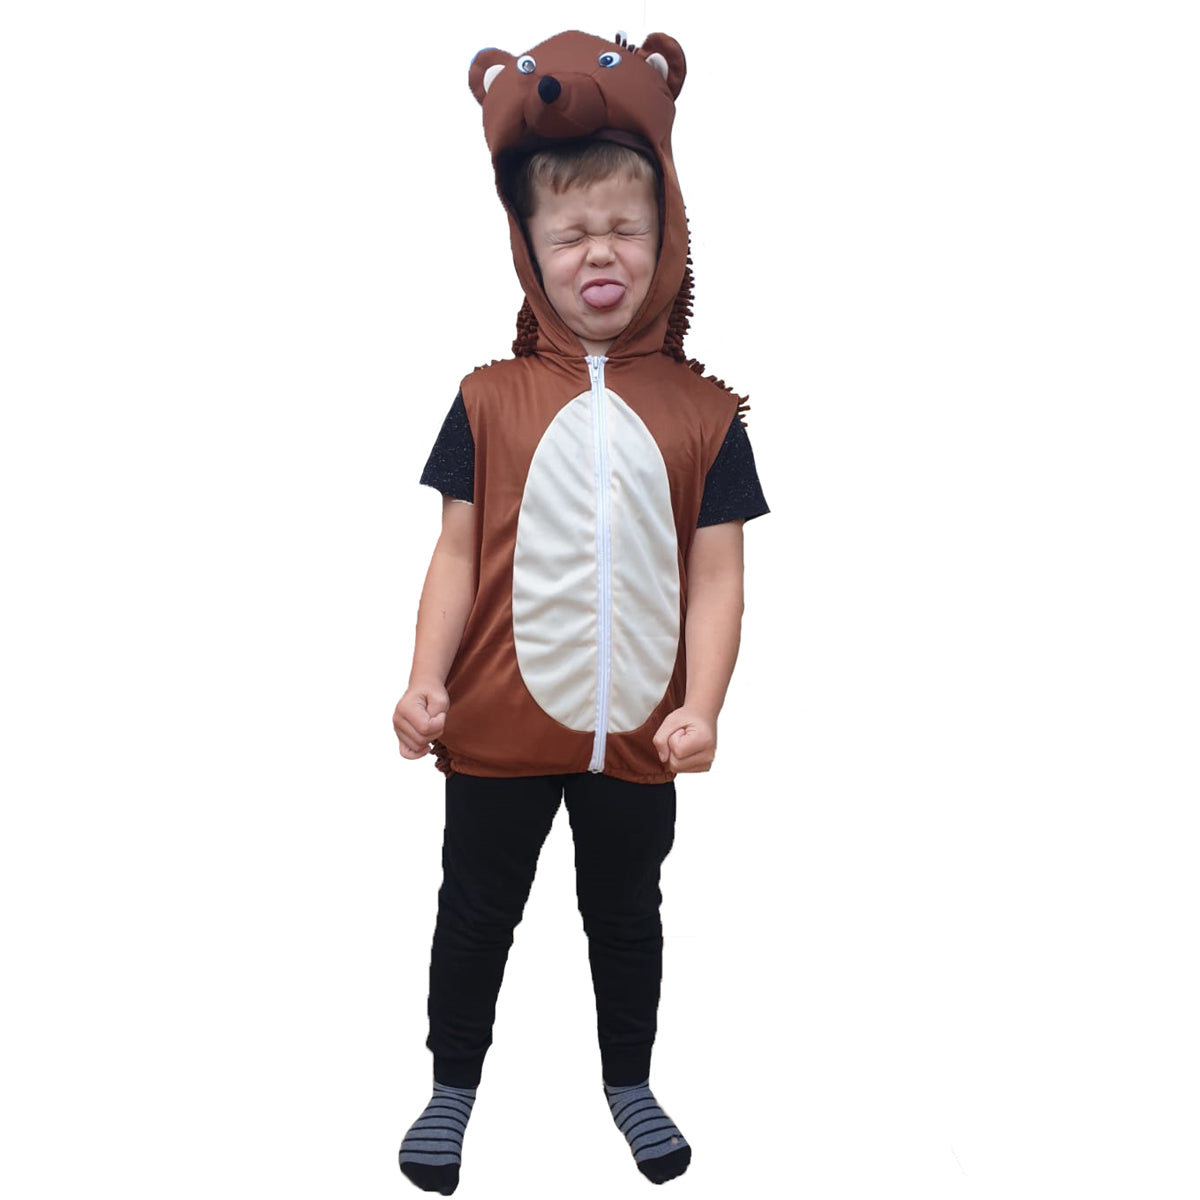 Bodysocks - Hedgehog Costume